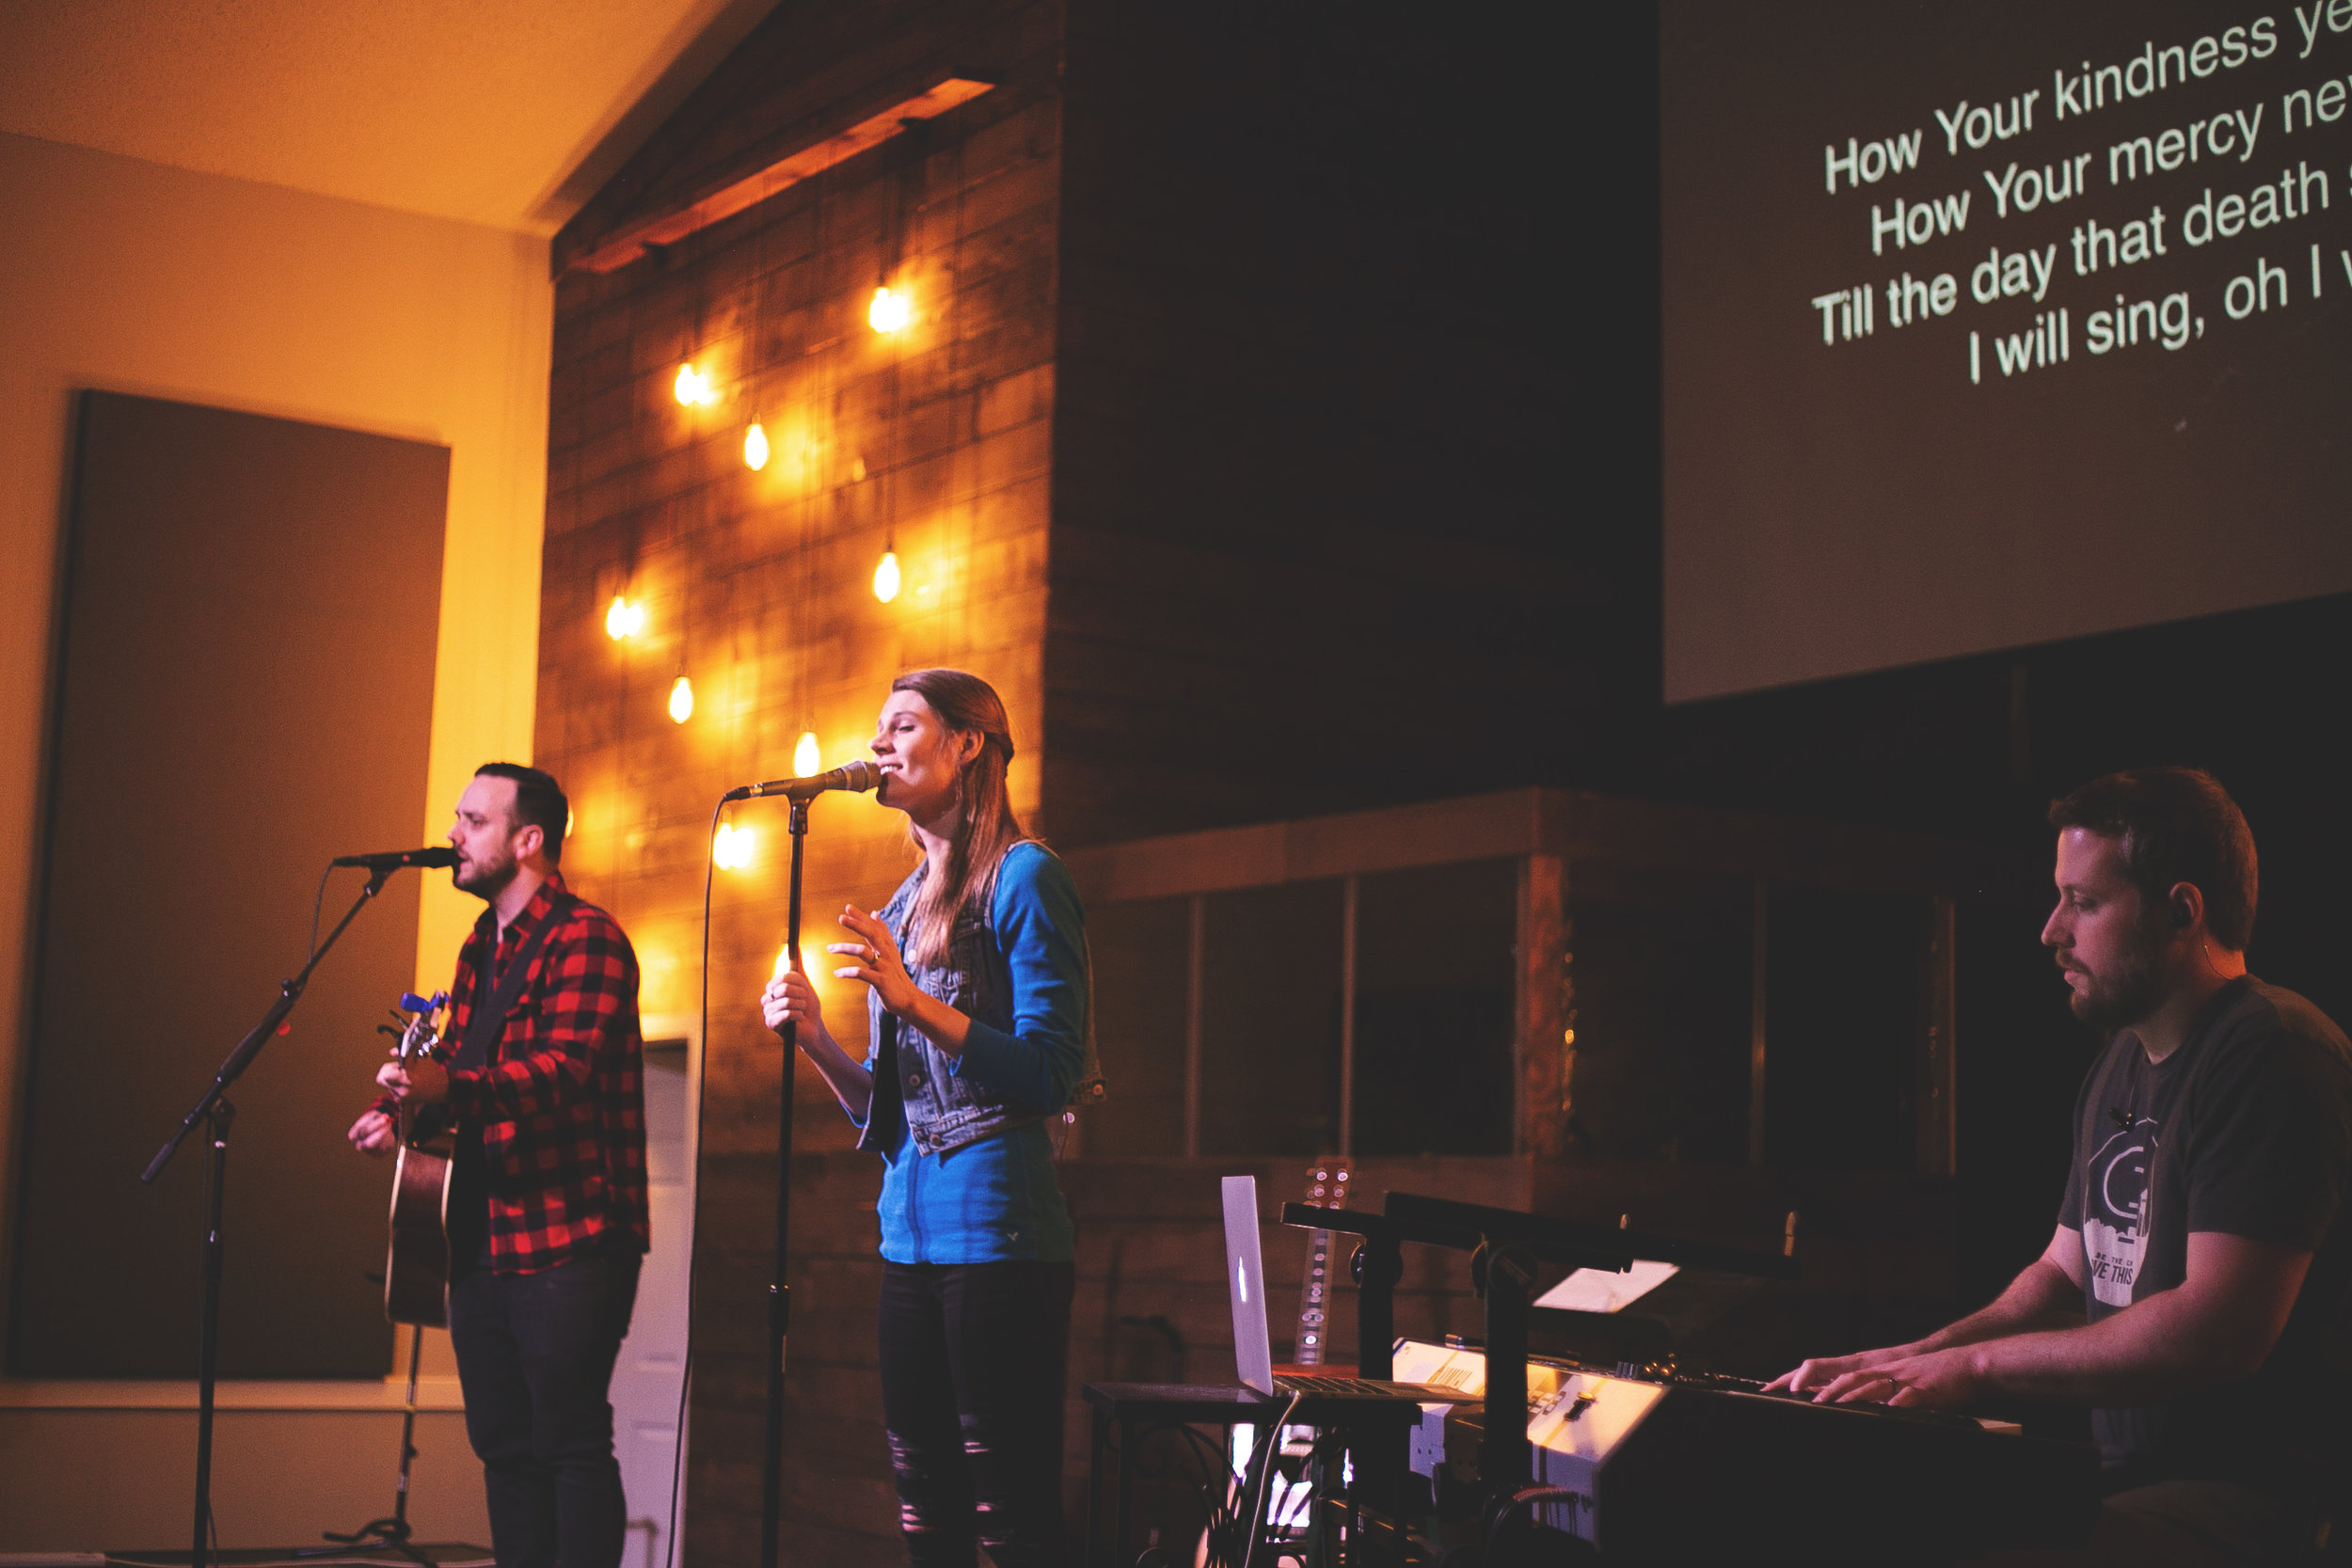 Spotify Playlist - We've created a playlist for you to be able to sing the songs we sing on Sunday mornings throughout the week.